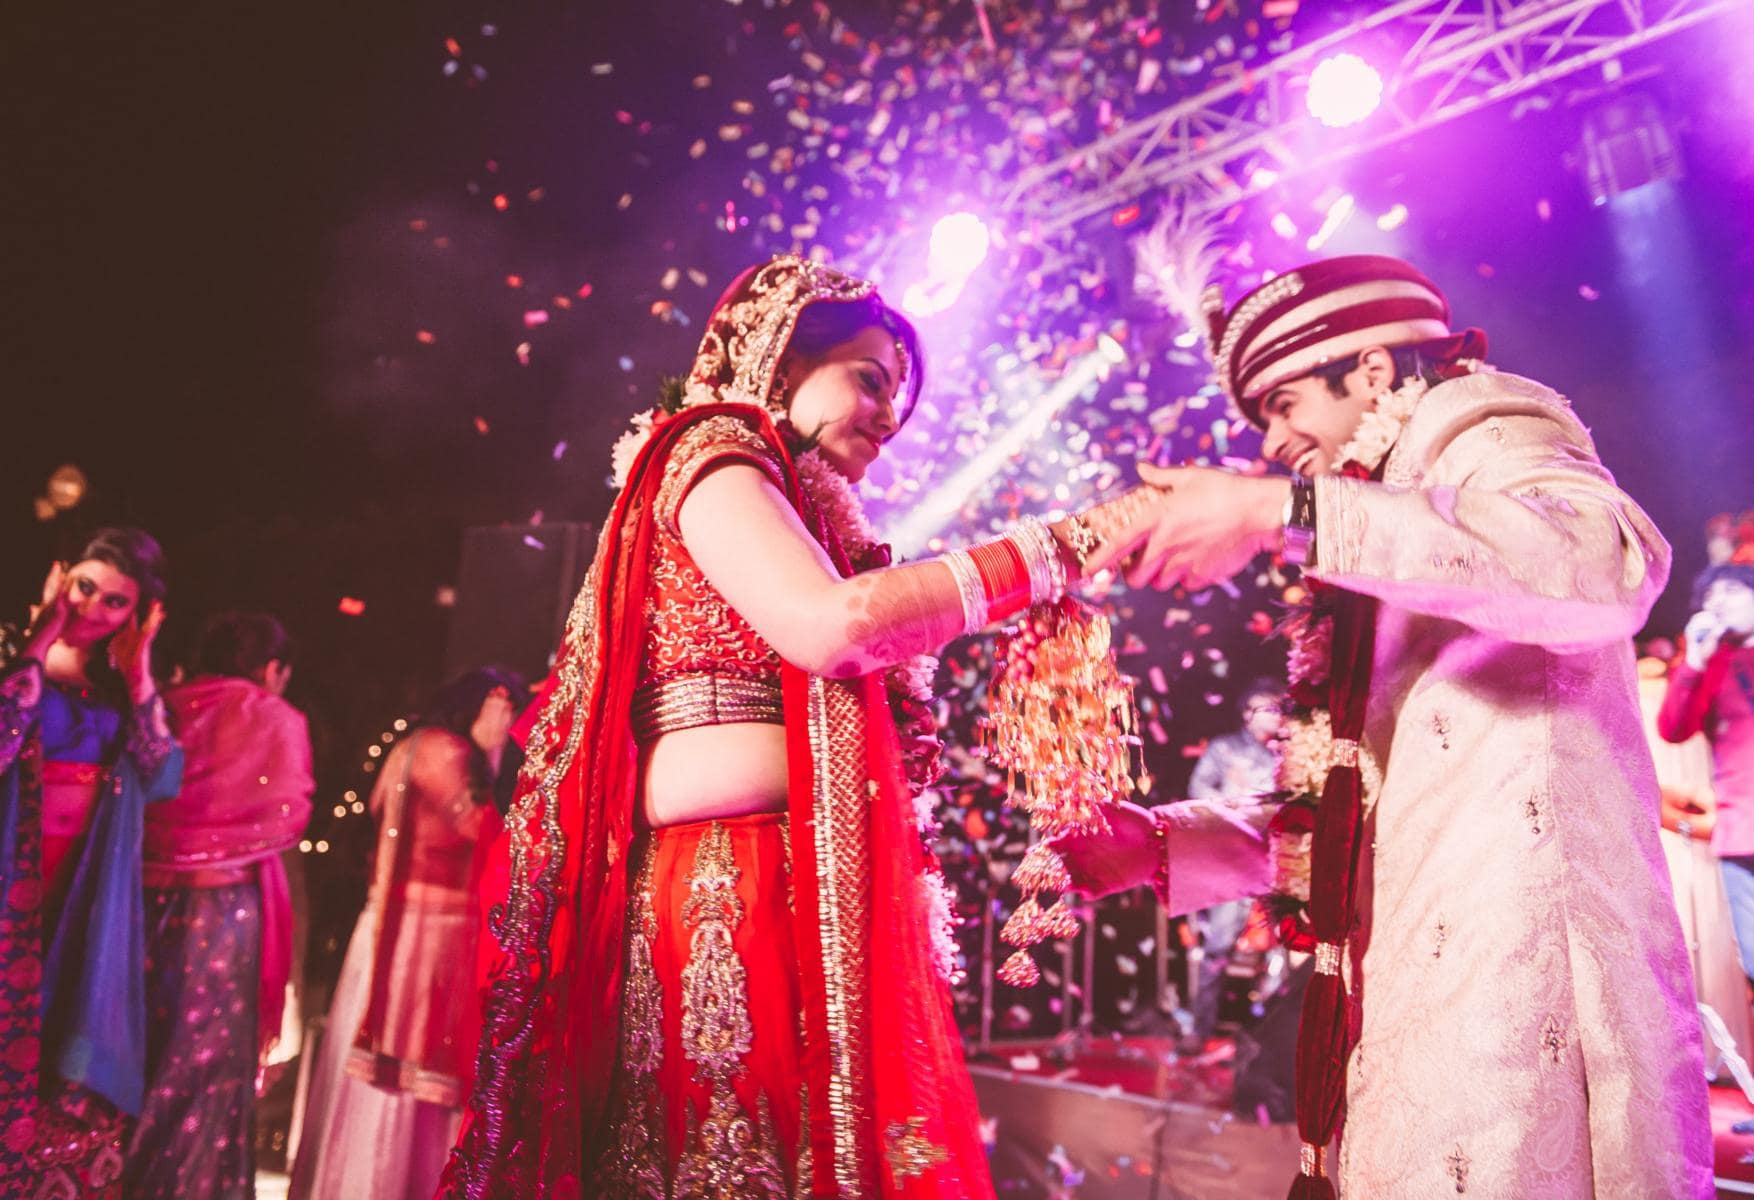 couple dance in wedding:kuntal mukherjee photography